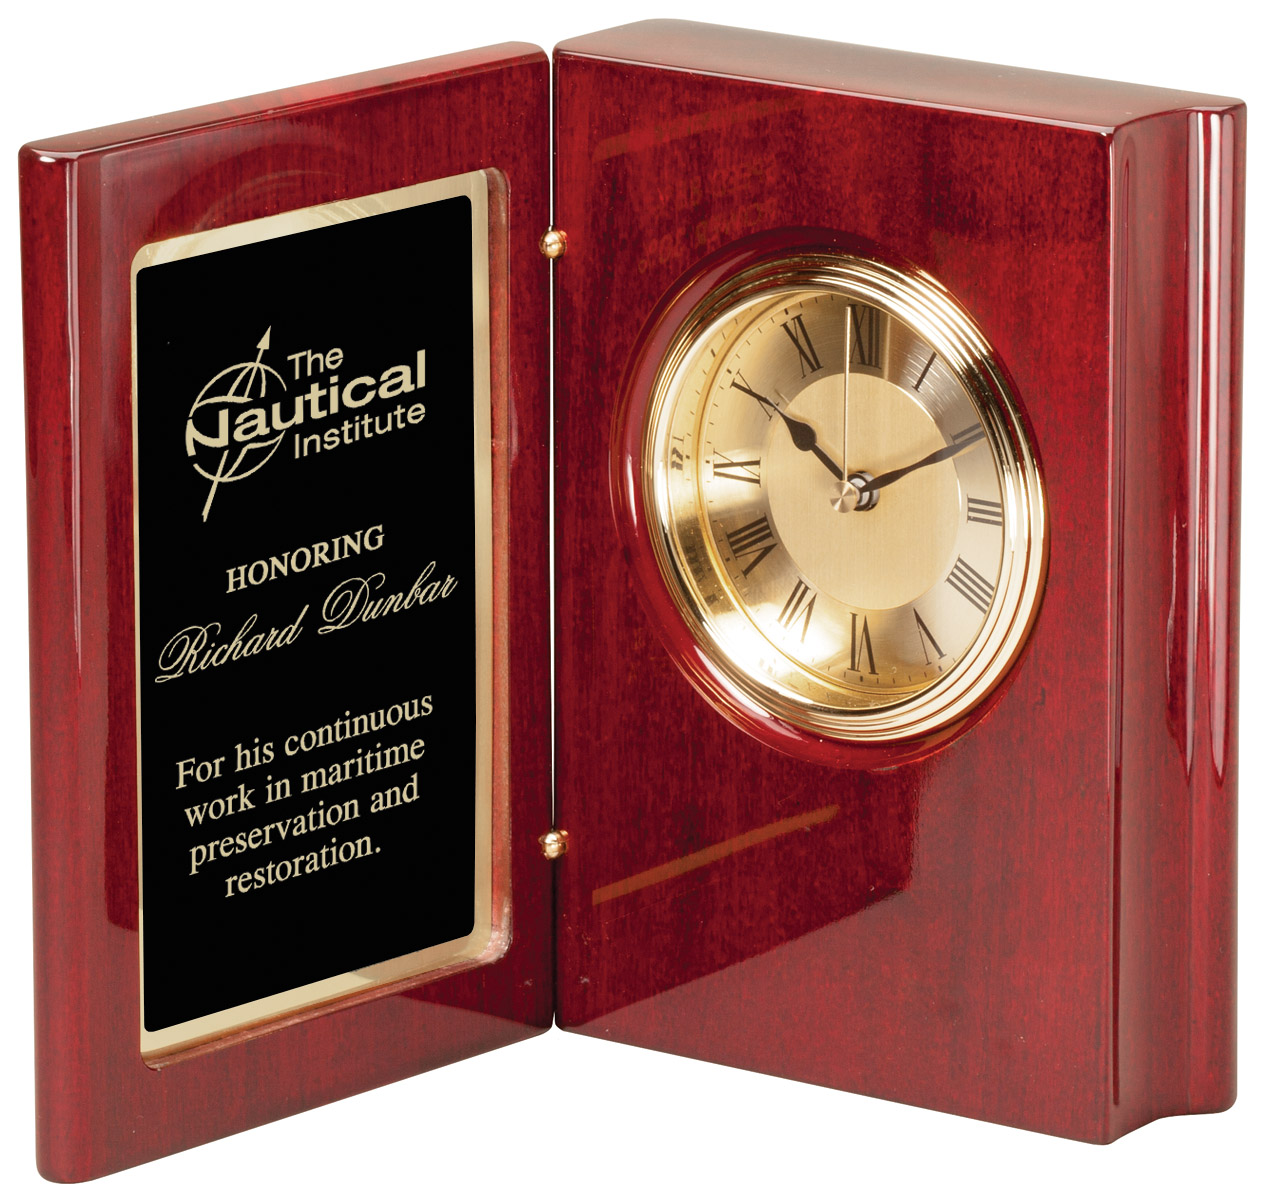 Personalized Rosewood Finish Book Clock